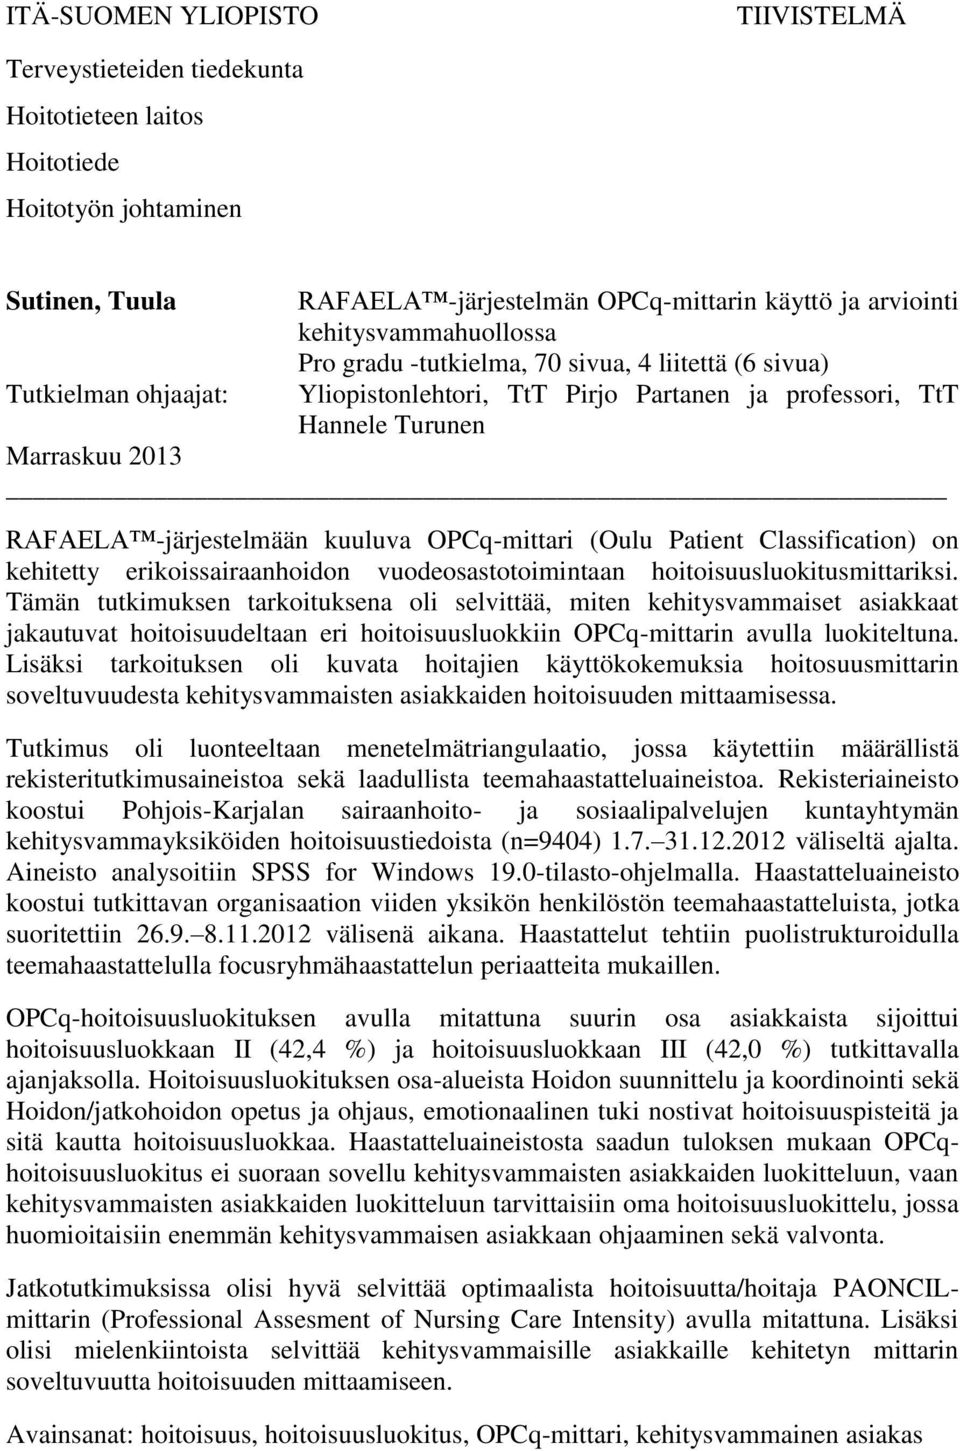 kuuluva OPCq-mittari (Oulu Patient Classification) on kehitetty erikoissairaanhoidon vuodeosastotoimintaan hoitoisuusluokitusmittariksi.